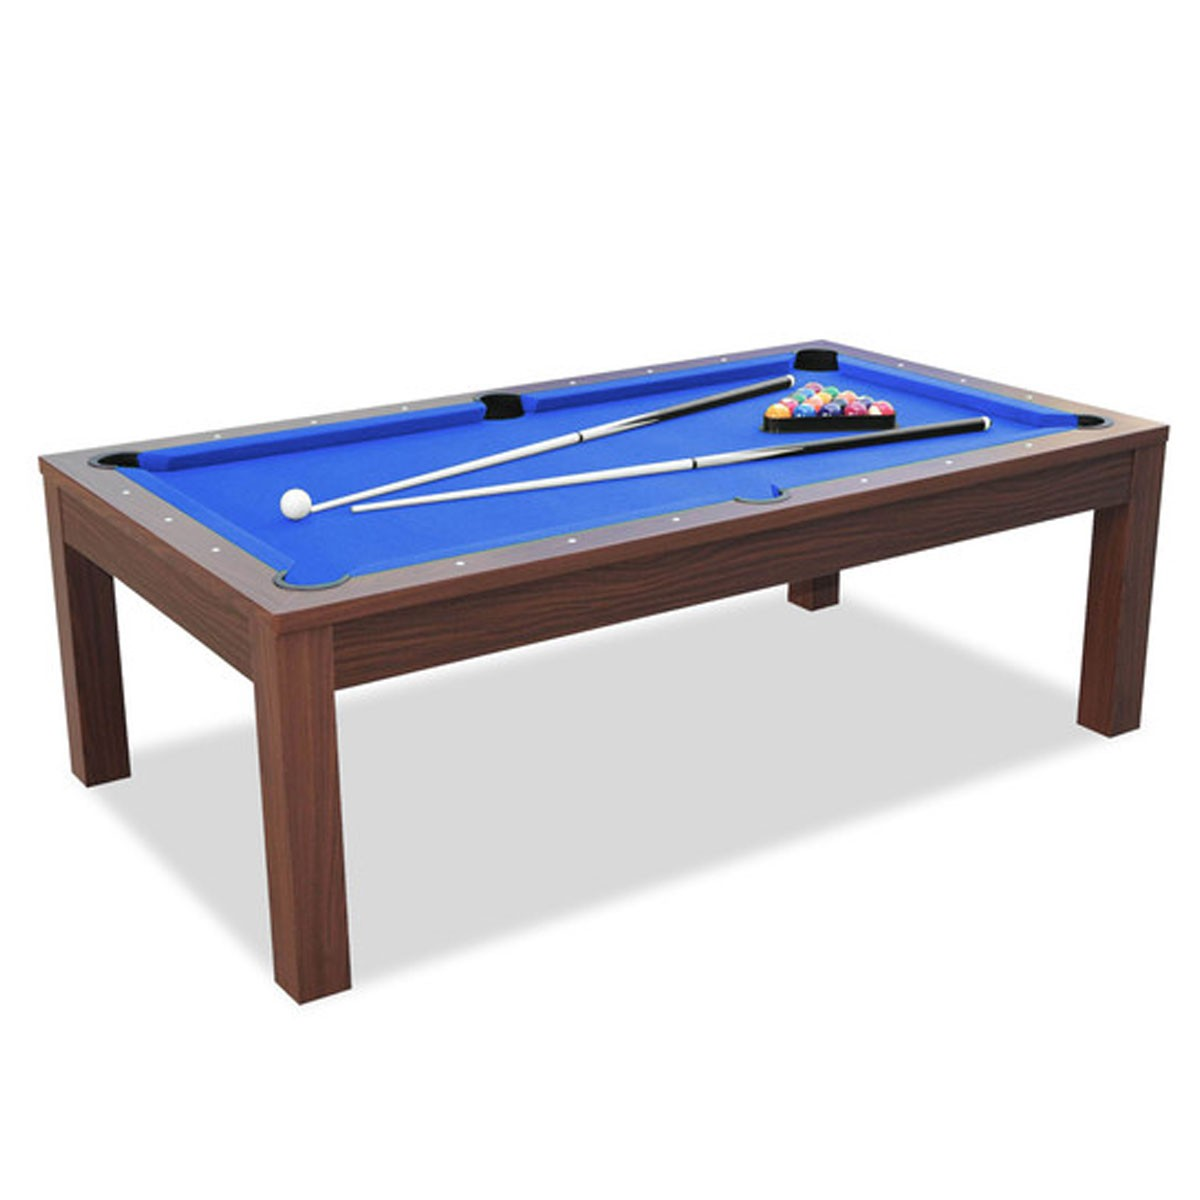 7 pied table de billard accessoires zlb p32 decoraport for Table 6 2 ar 71 32